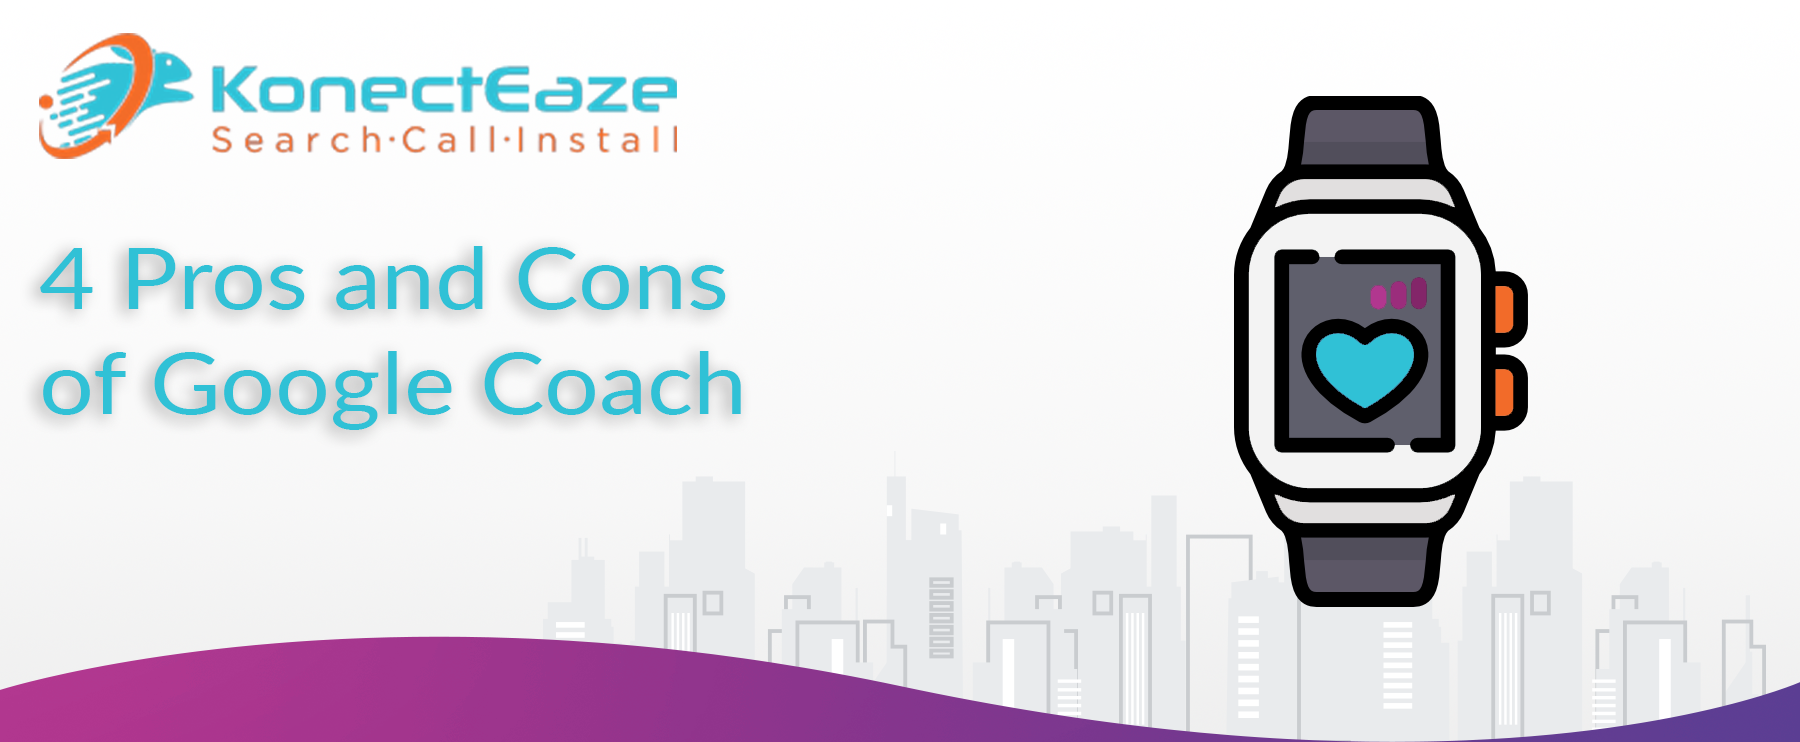 4 Pros and Cons of Google Coach